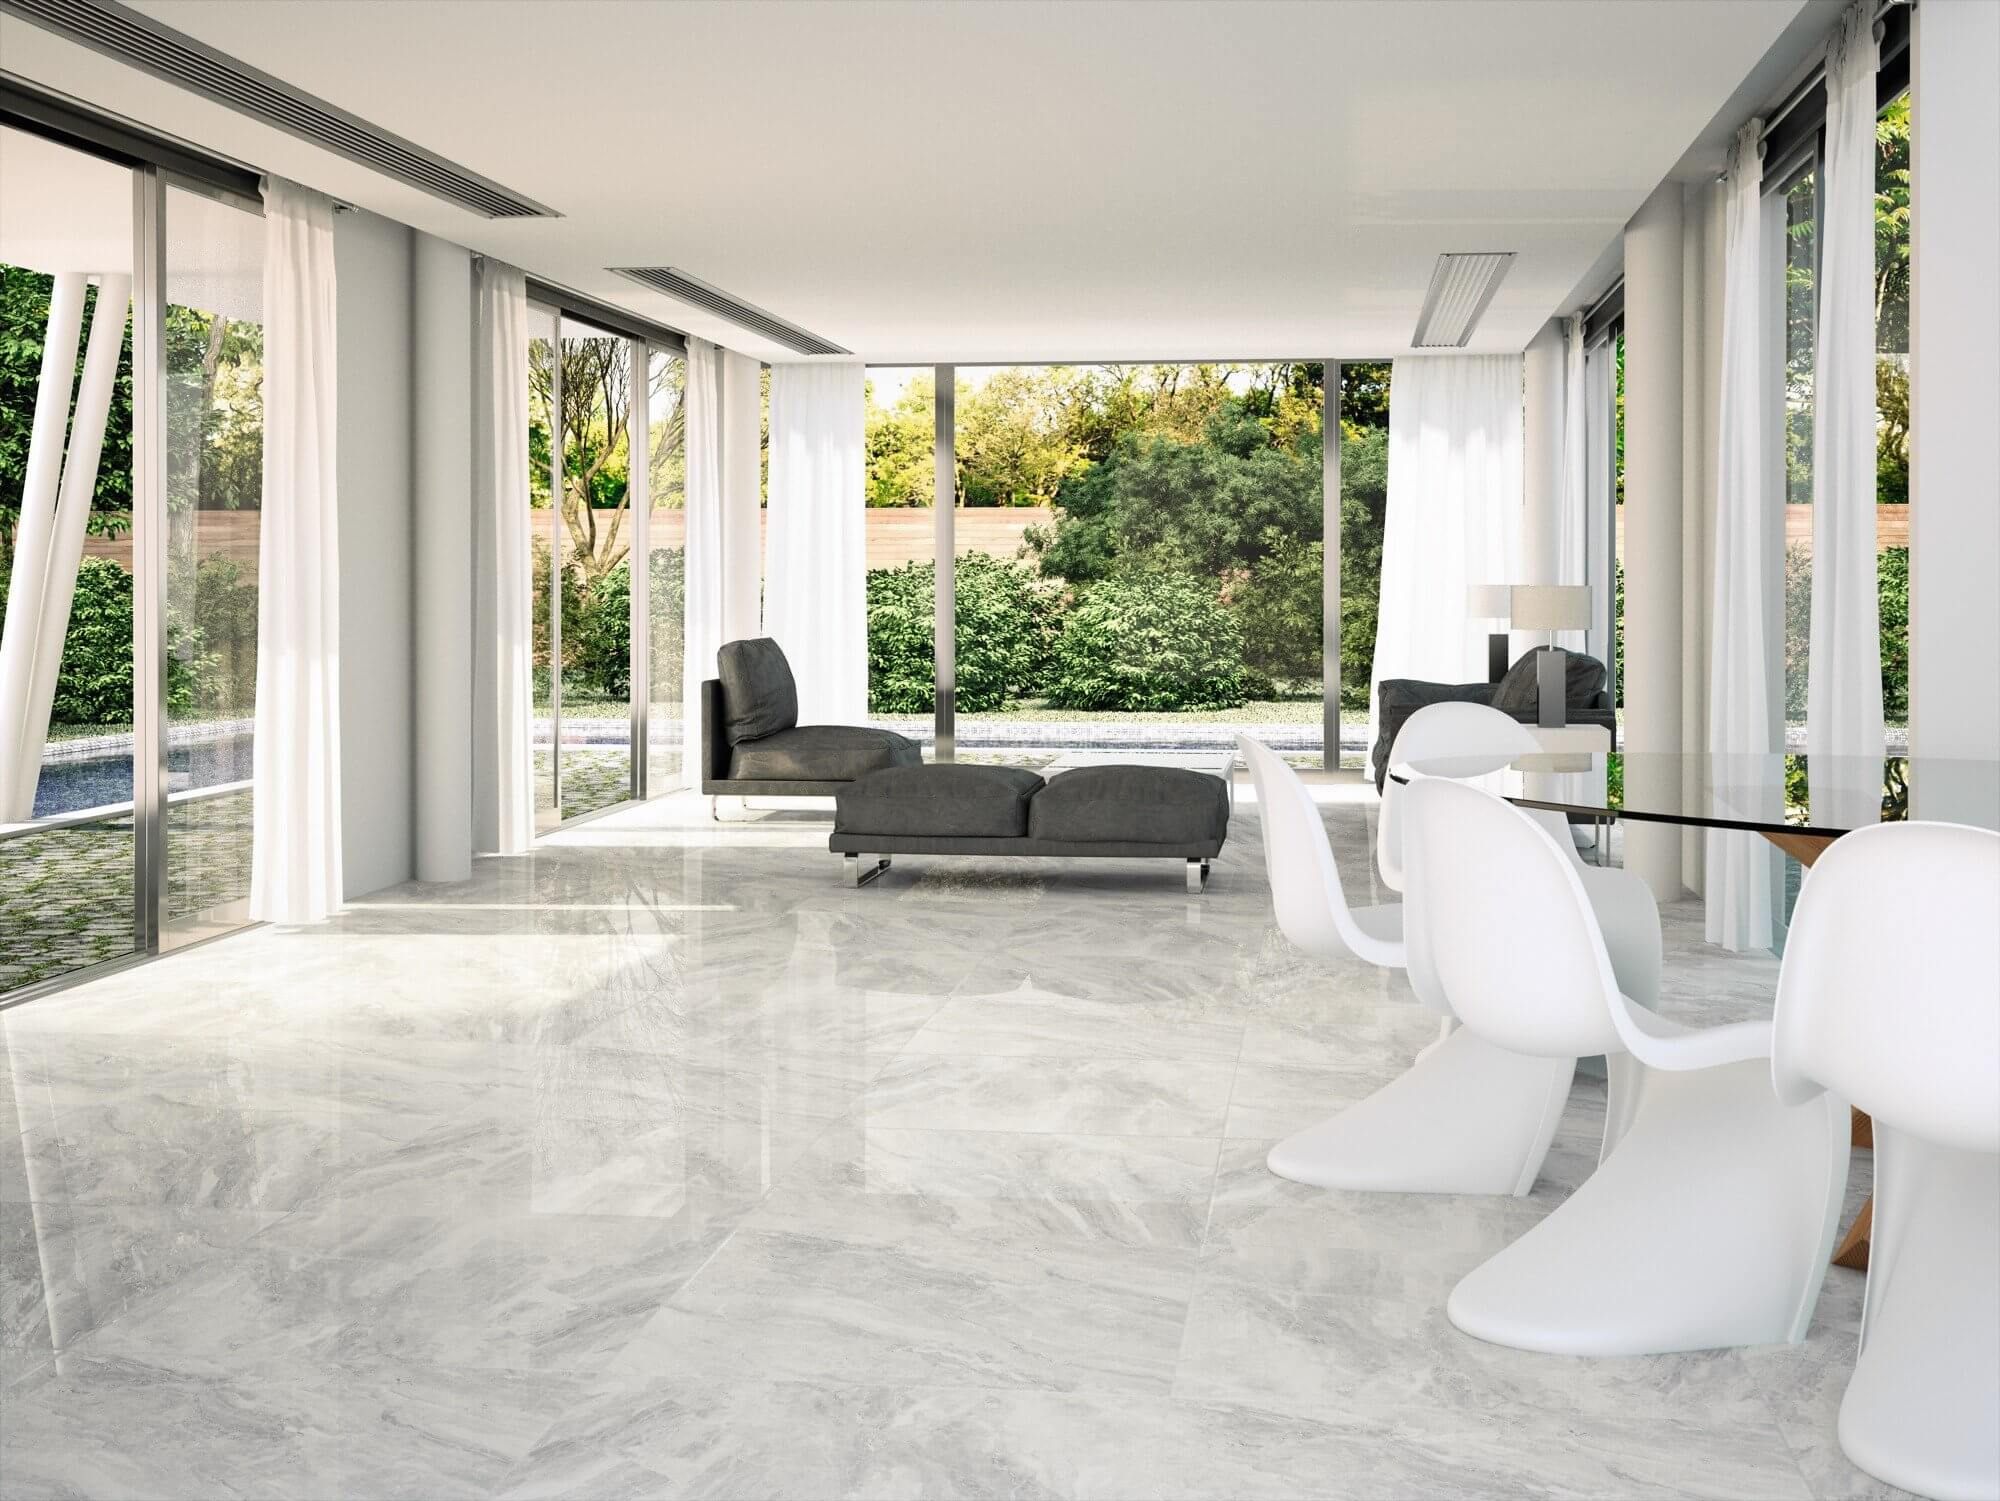 Top 5 Italian marbles for interior designing - Thar Marbles